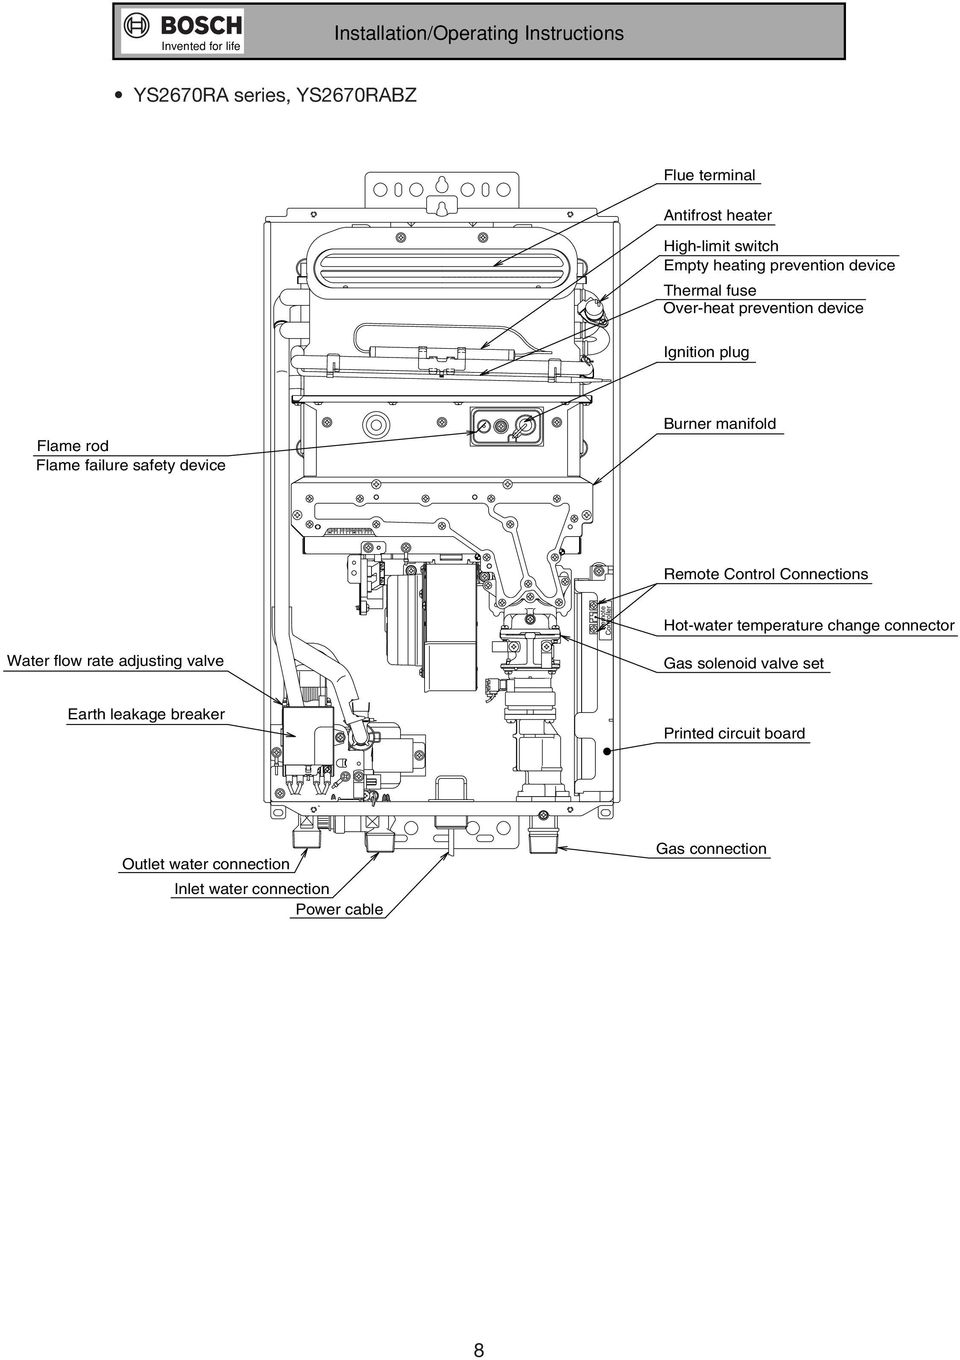 Installation/Operating Instructions. MODELS Bosch 17e